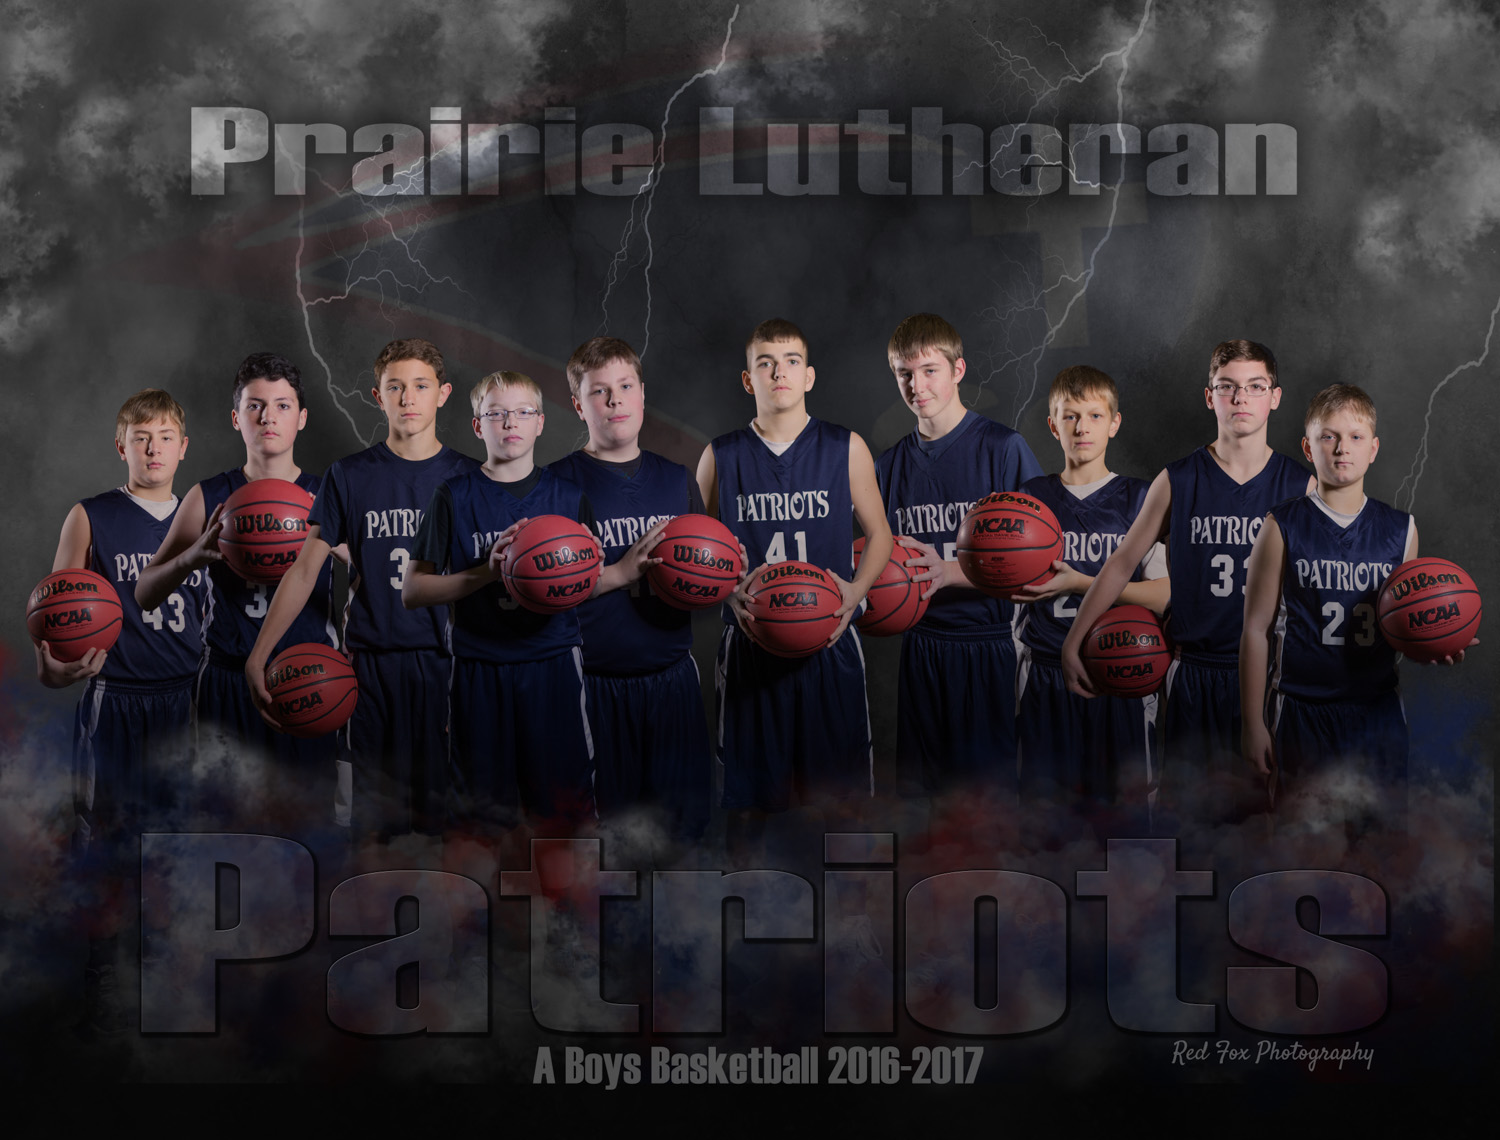 Specialized sports photography in southern MN